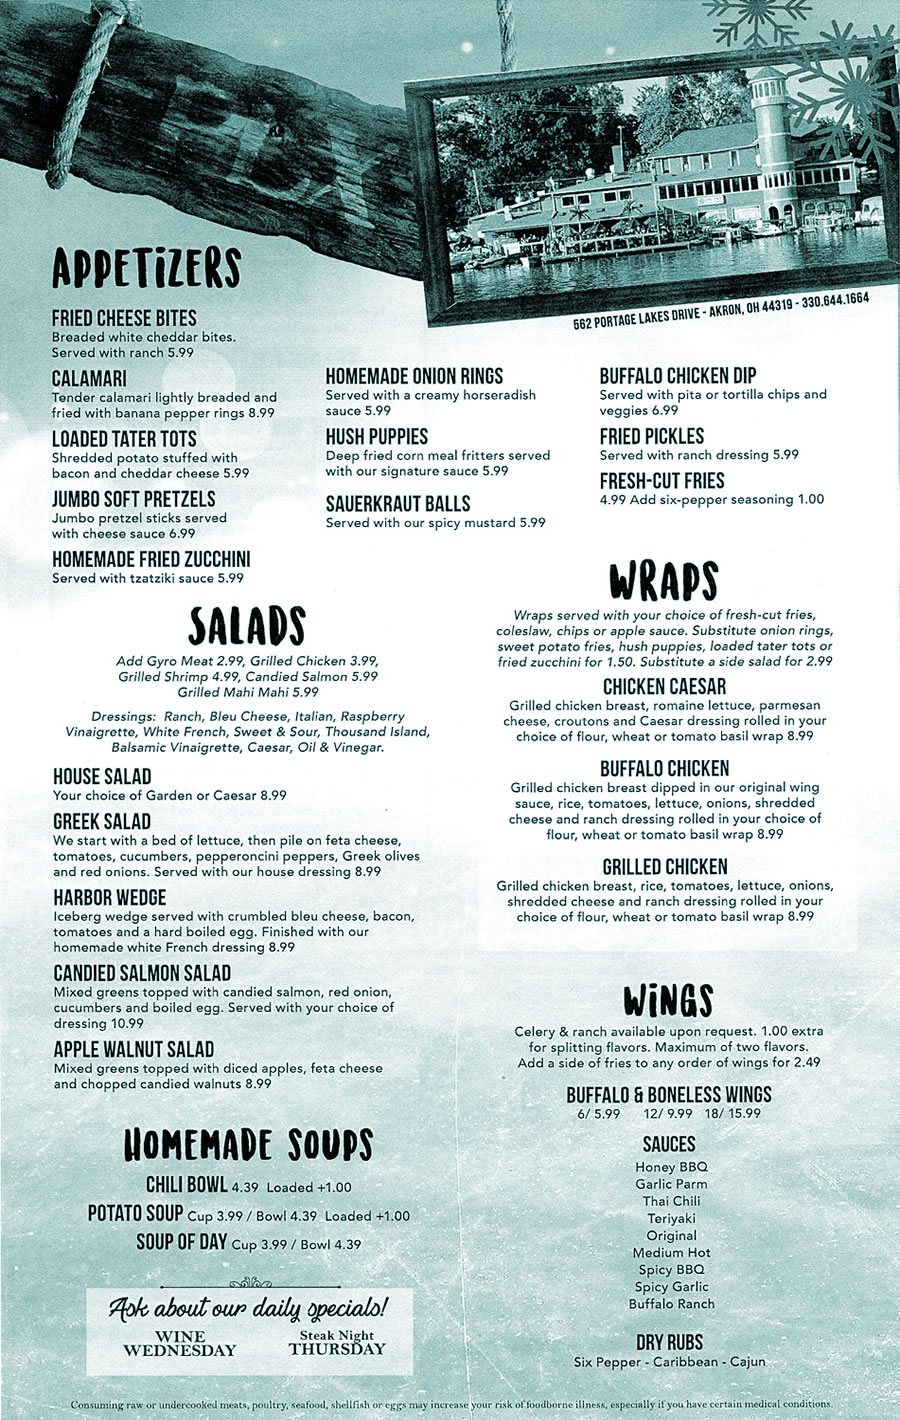 2017 Winter Menu - On Tap at the Harbor